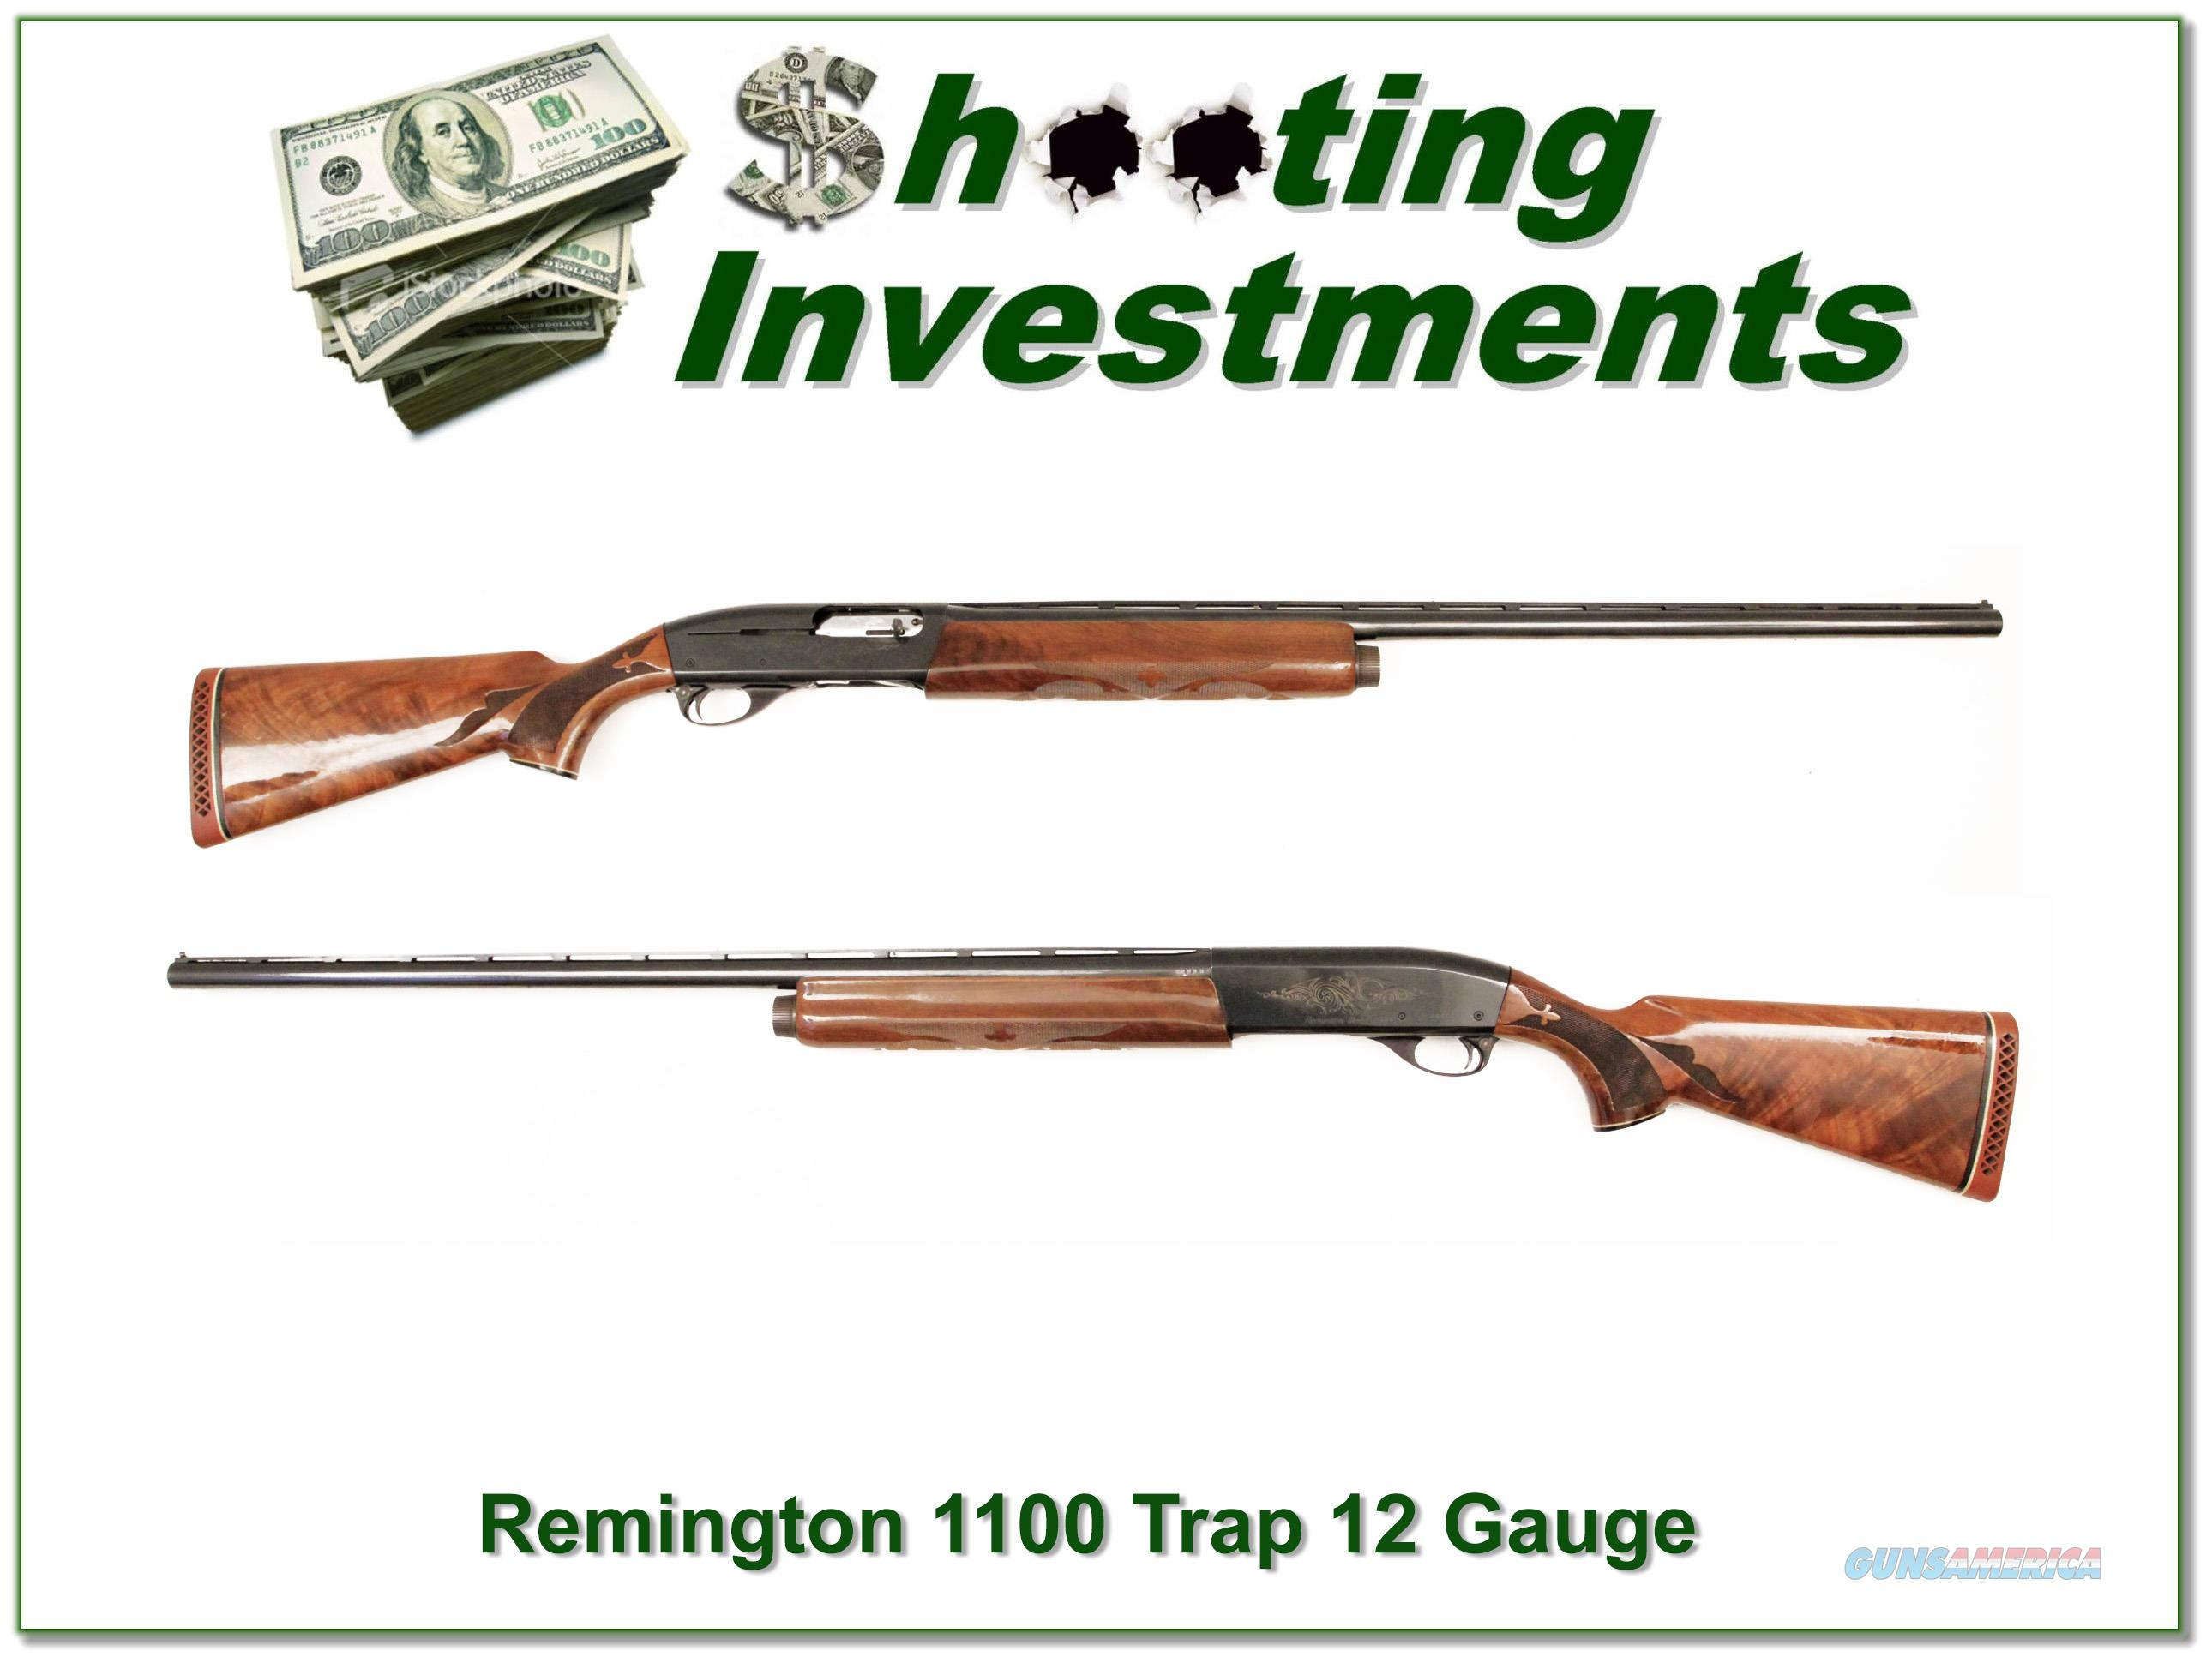 Remington 1100 Trap 30in Full XX Wood!  Guns > Shotguns > Remington Shotguns  > Autoloaders > Hunting